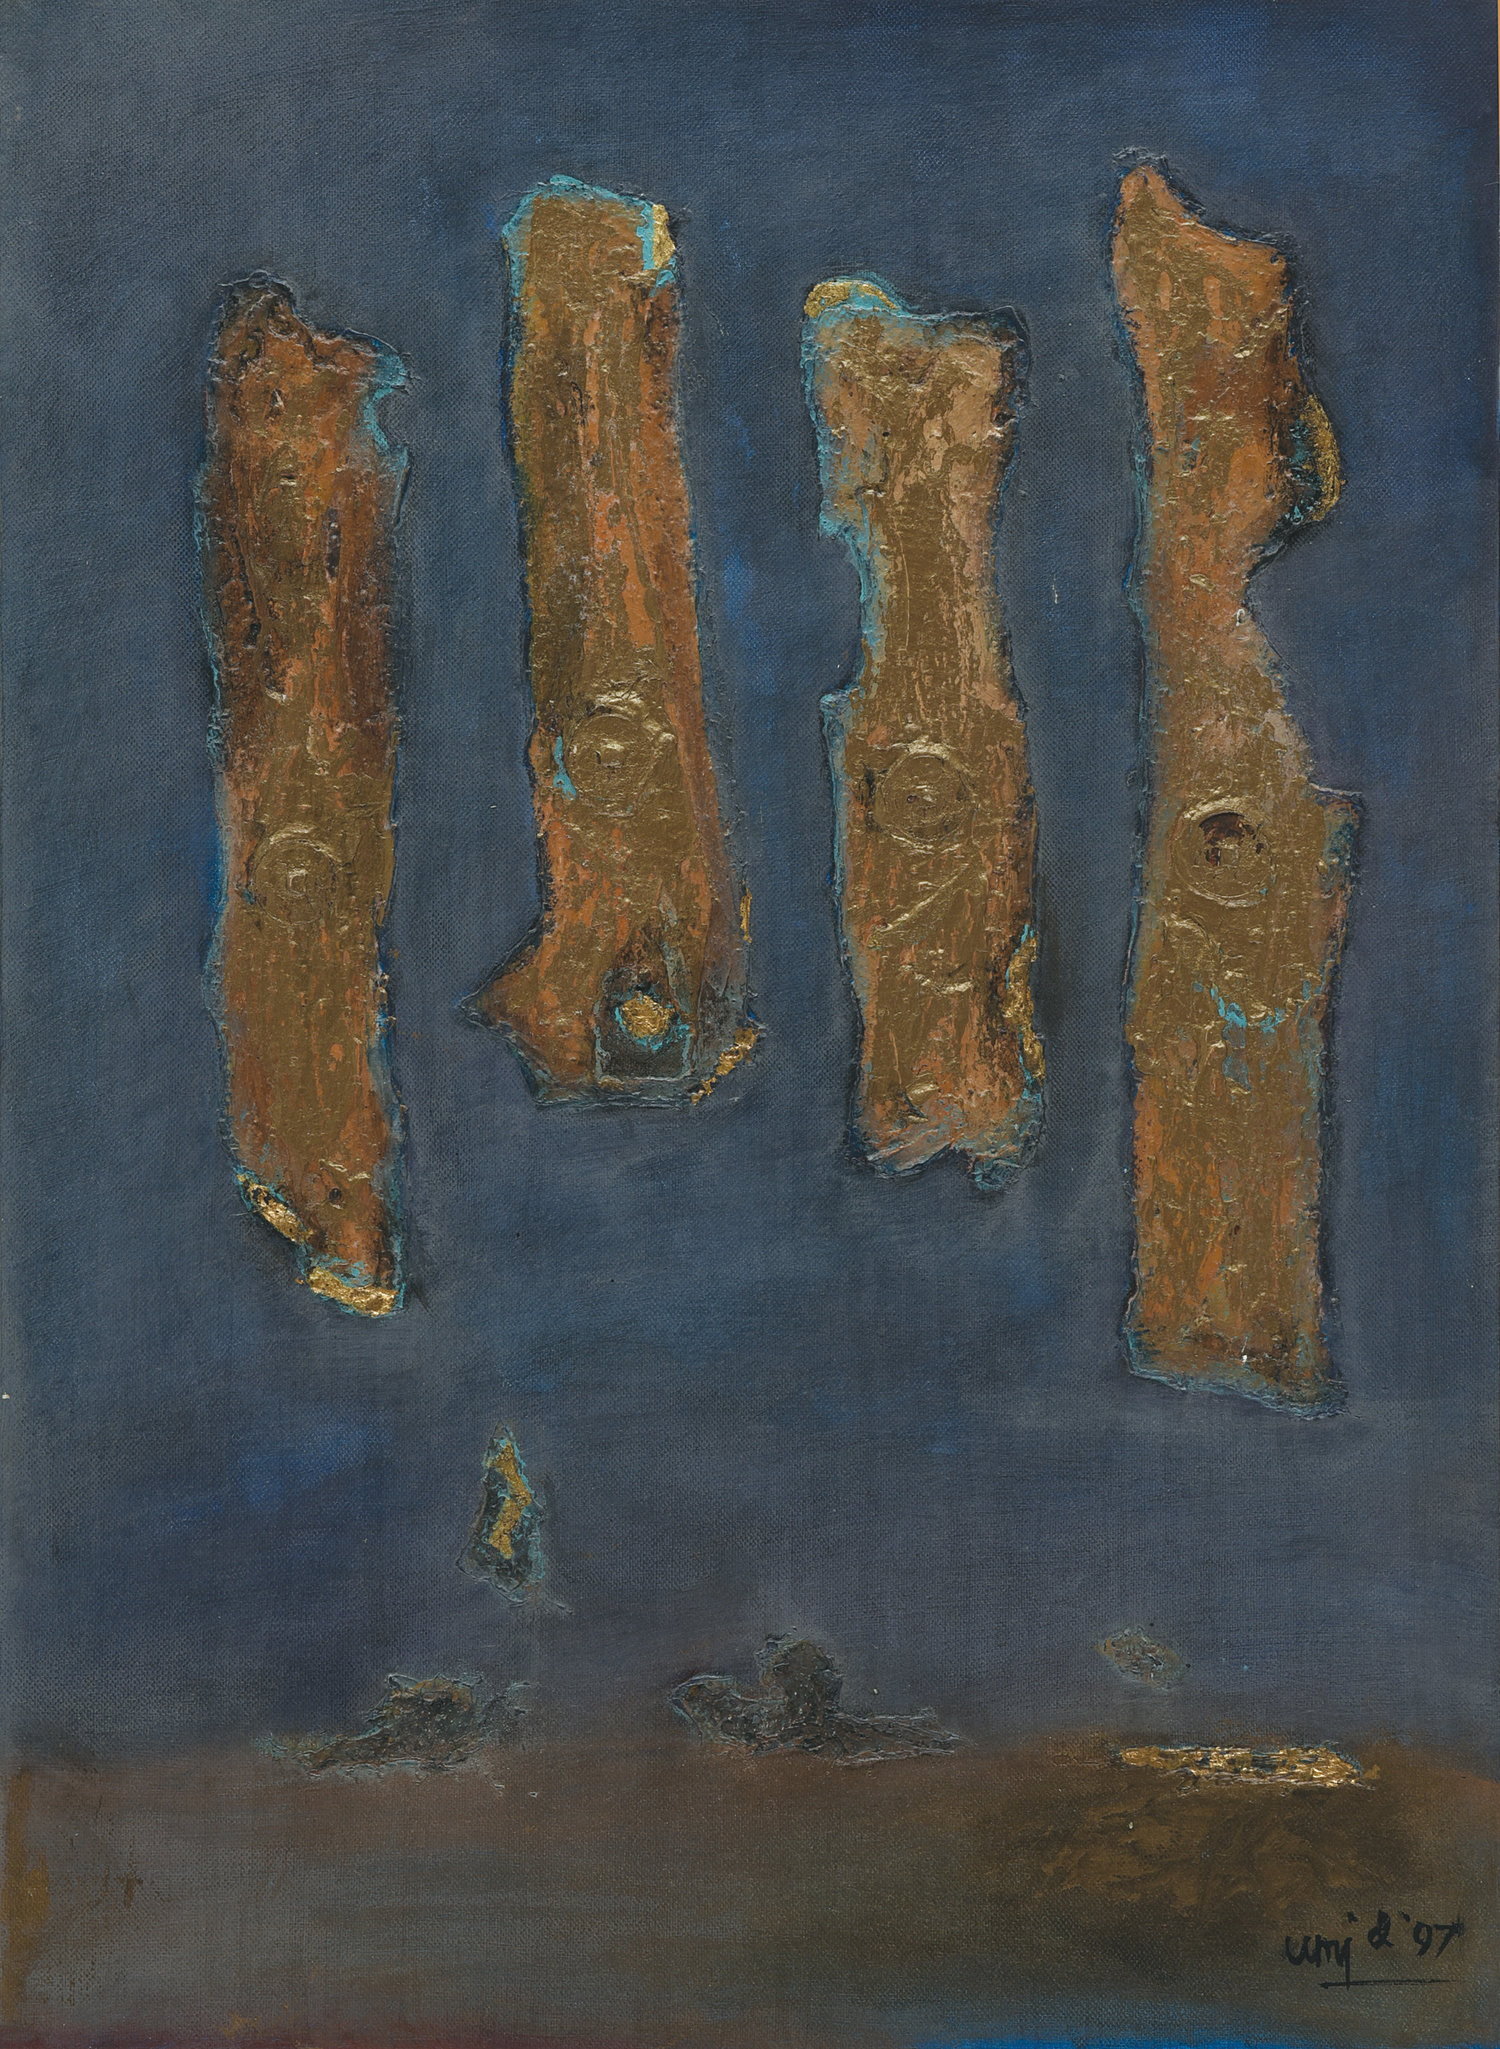 Umi Dachlan, Golden Pillars on Blue, mixed media on canvas, 58 x 42 cm, 1997